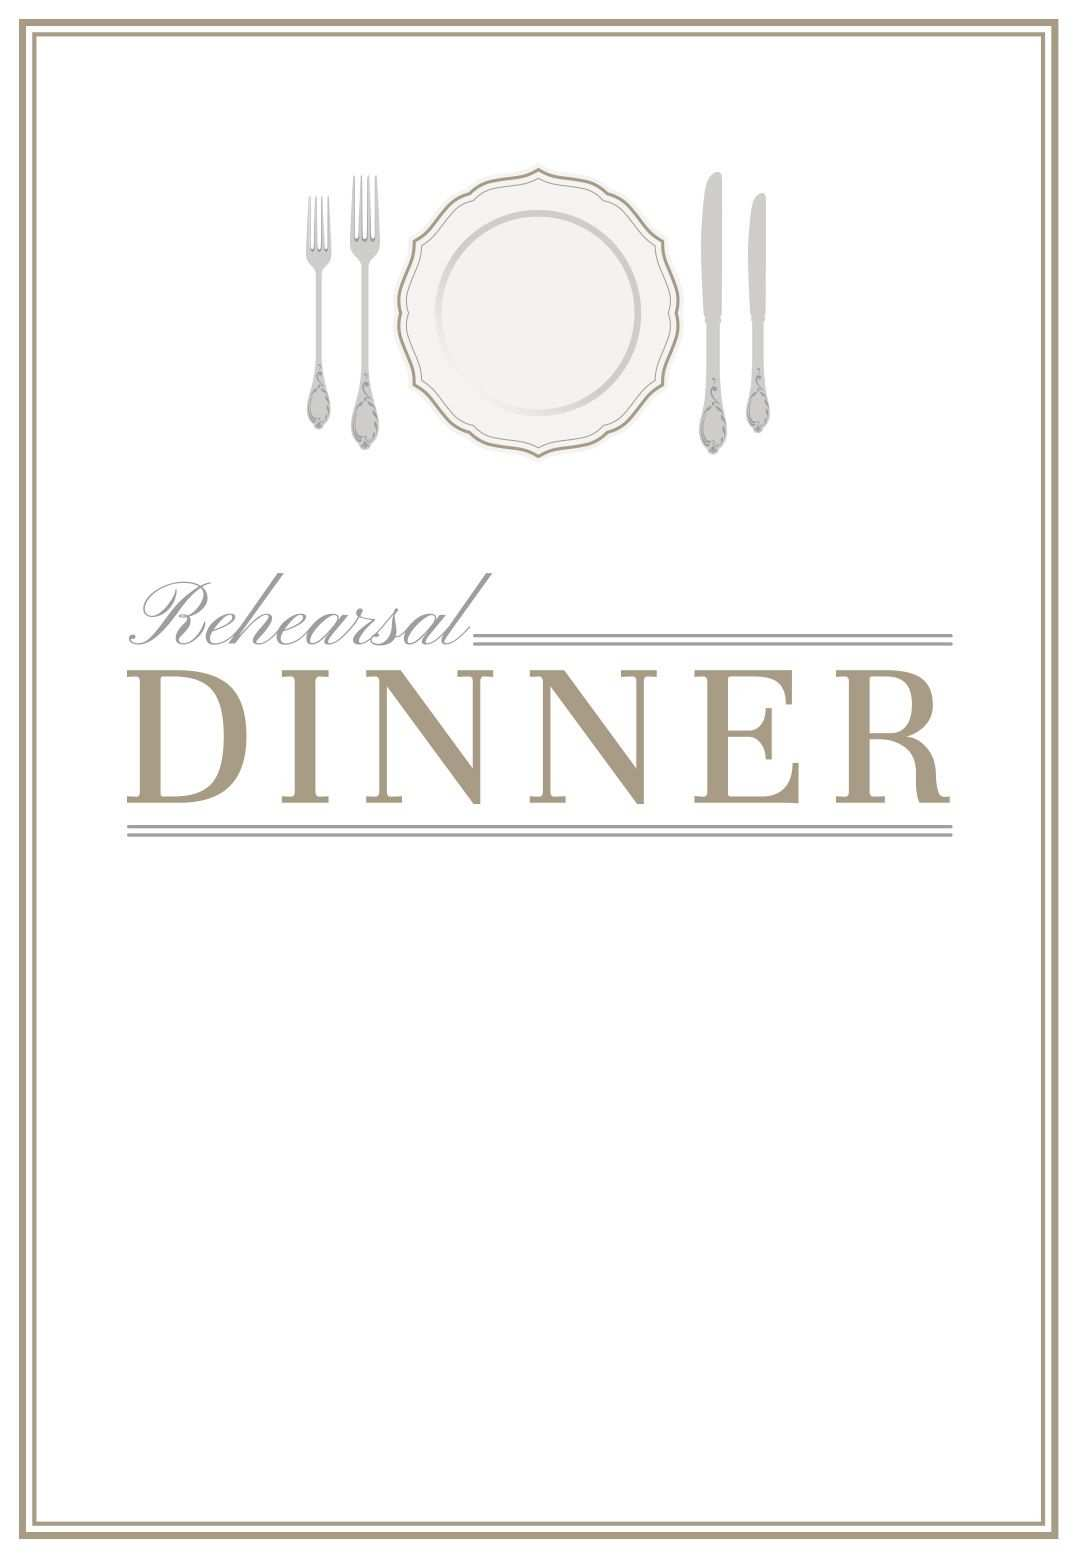 87 Format Dinner Invitation Template Free PSD File by Dinner Invitation  Template Free - Cards Design Templates